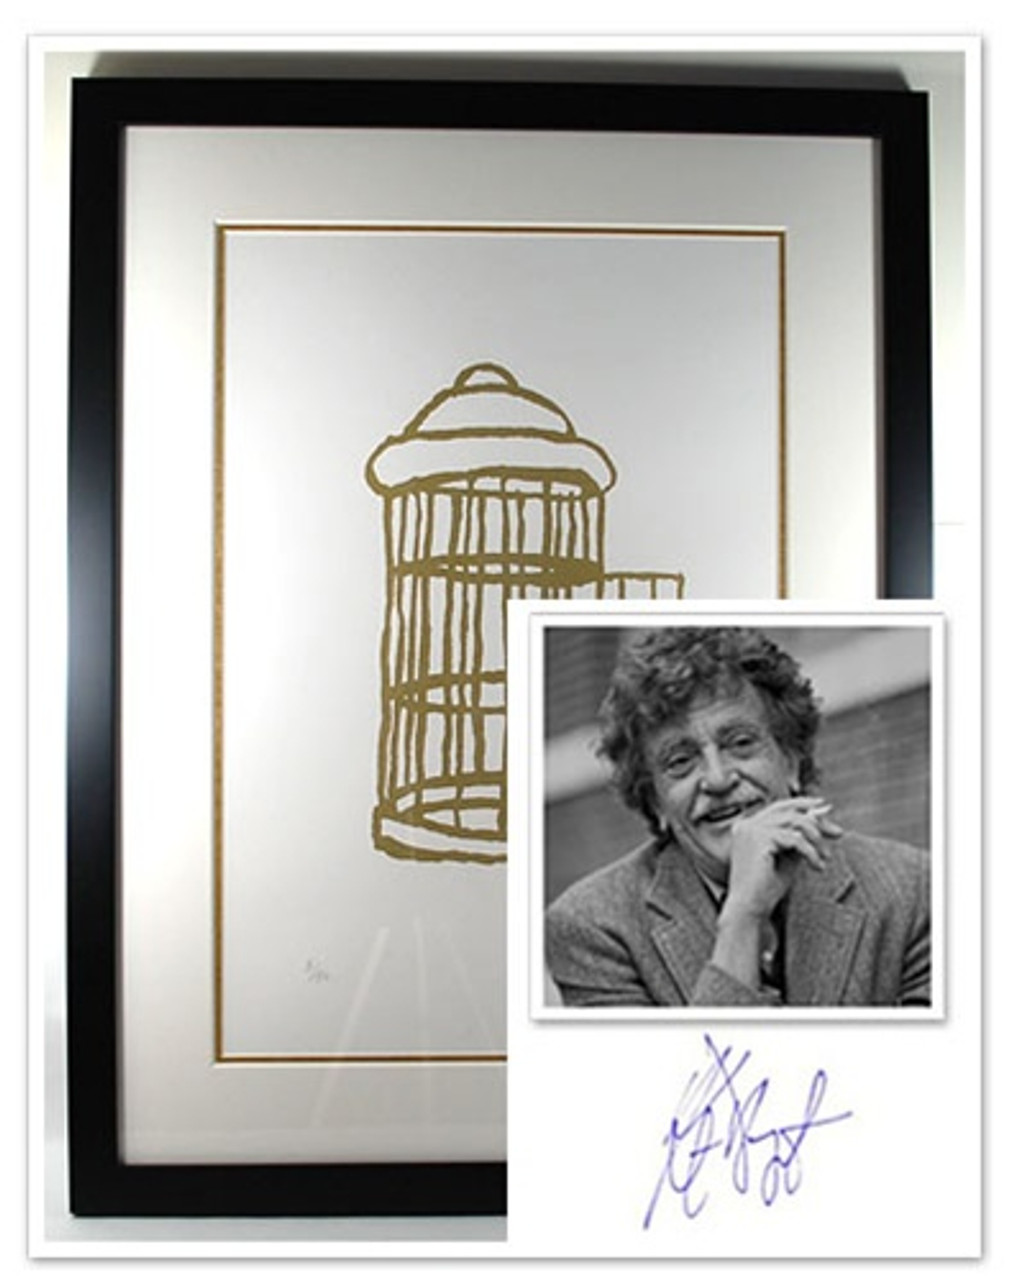 """Kurt Vonnegut Signed Limited Edition """"Gilded Cage"""" Silkscreen #5/50 , Double Matted in Museum Quality Glass"""